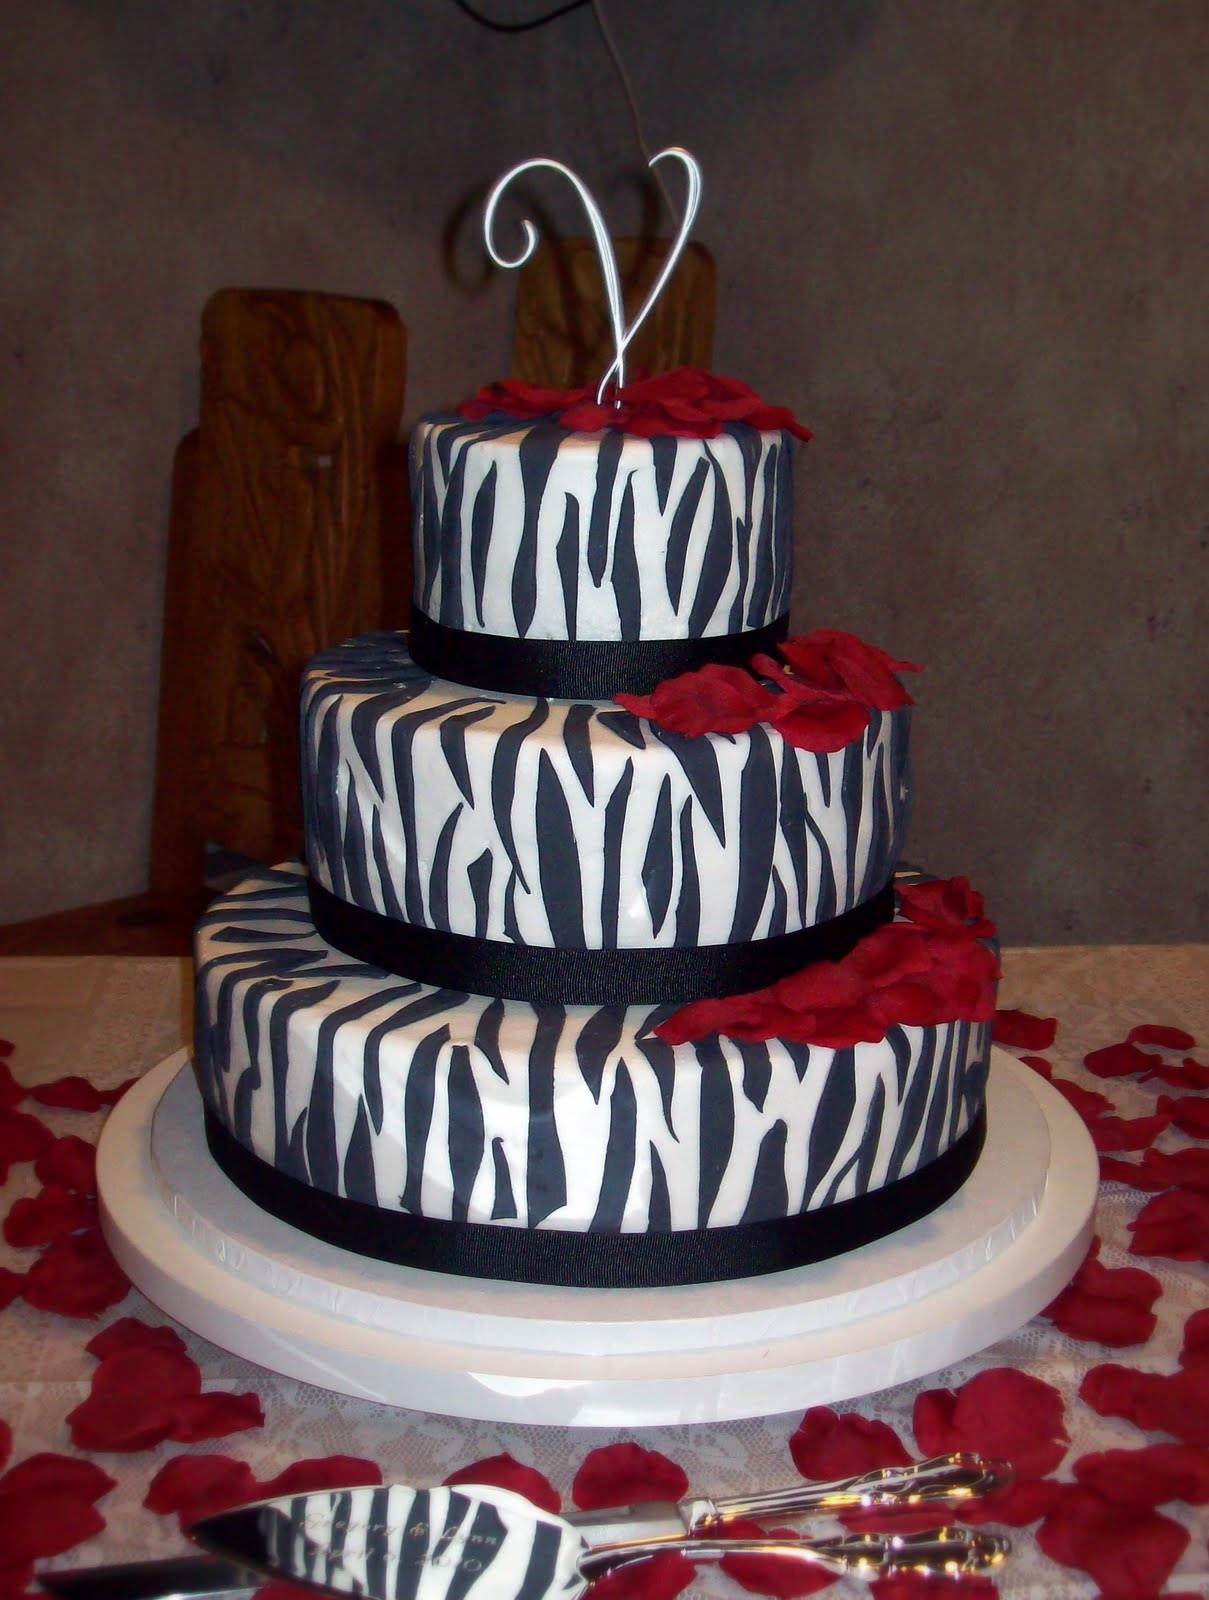 Zebra Design Birthday Cake : cakes zebra print birthday cakes animal print cakes ...